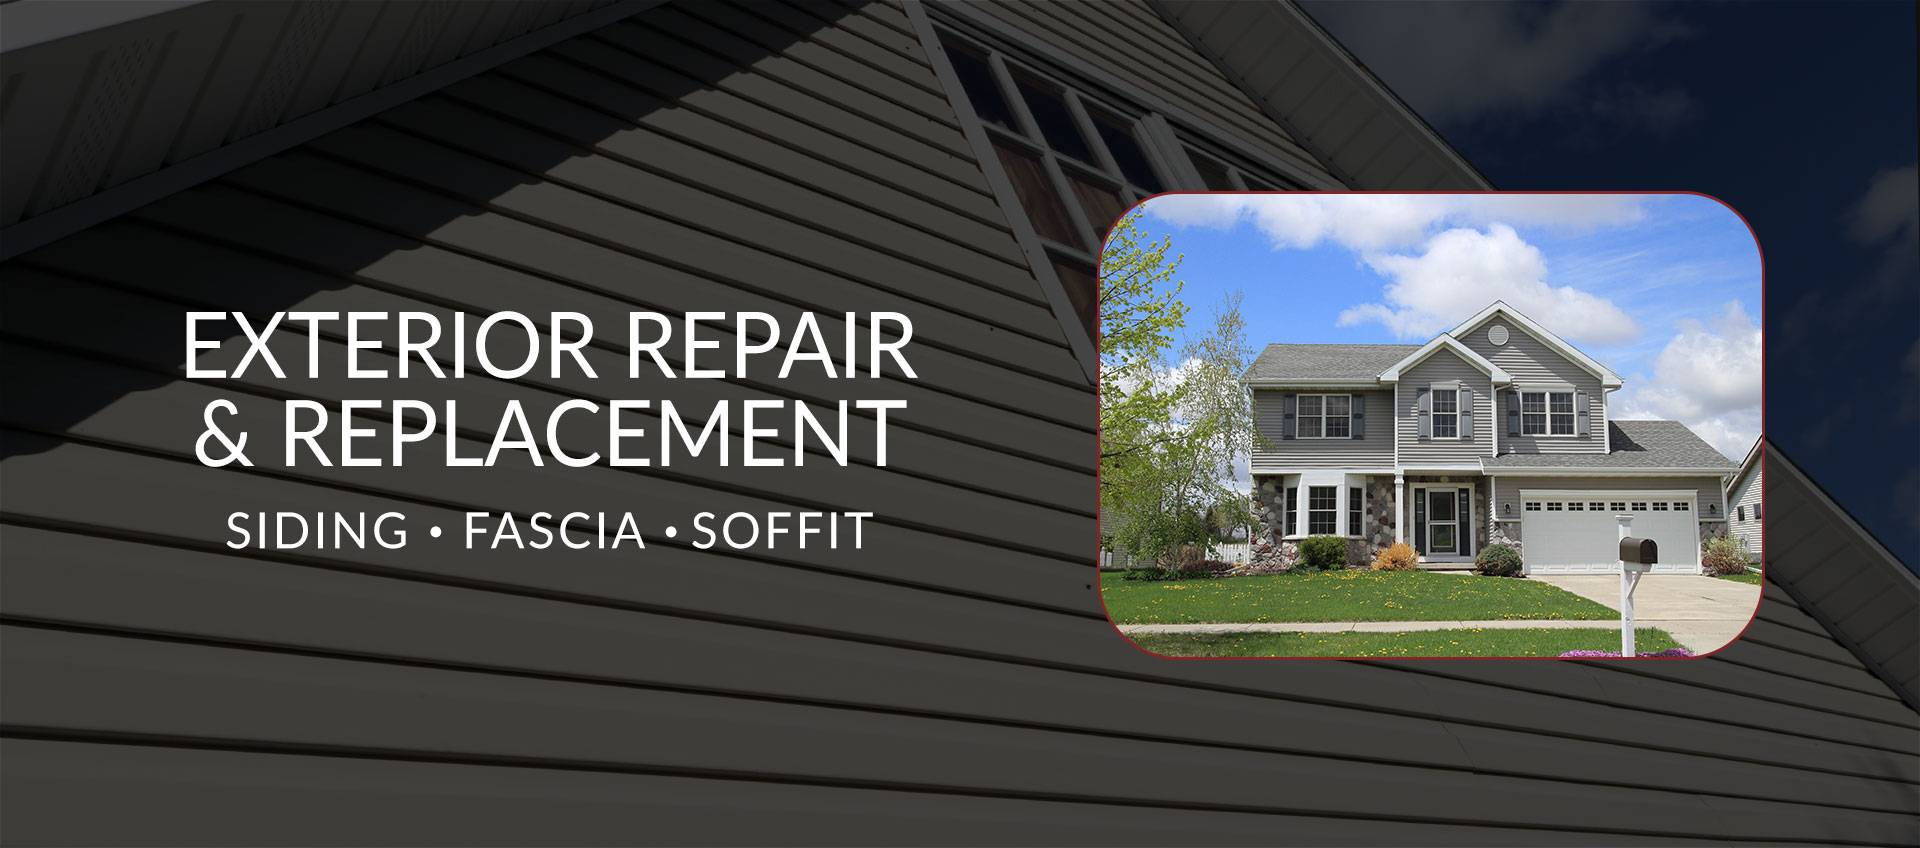 Dr. Exteriors - Slider - Siding Repair Replacement + Fascia + Soffit